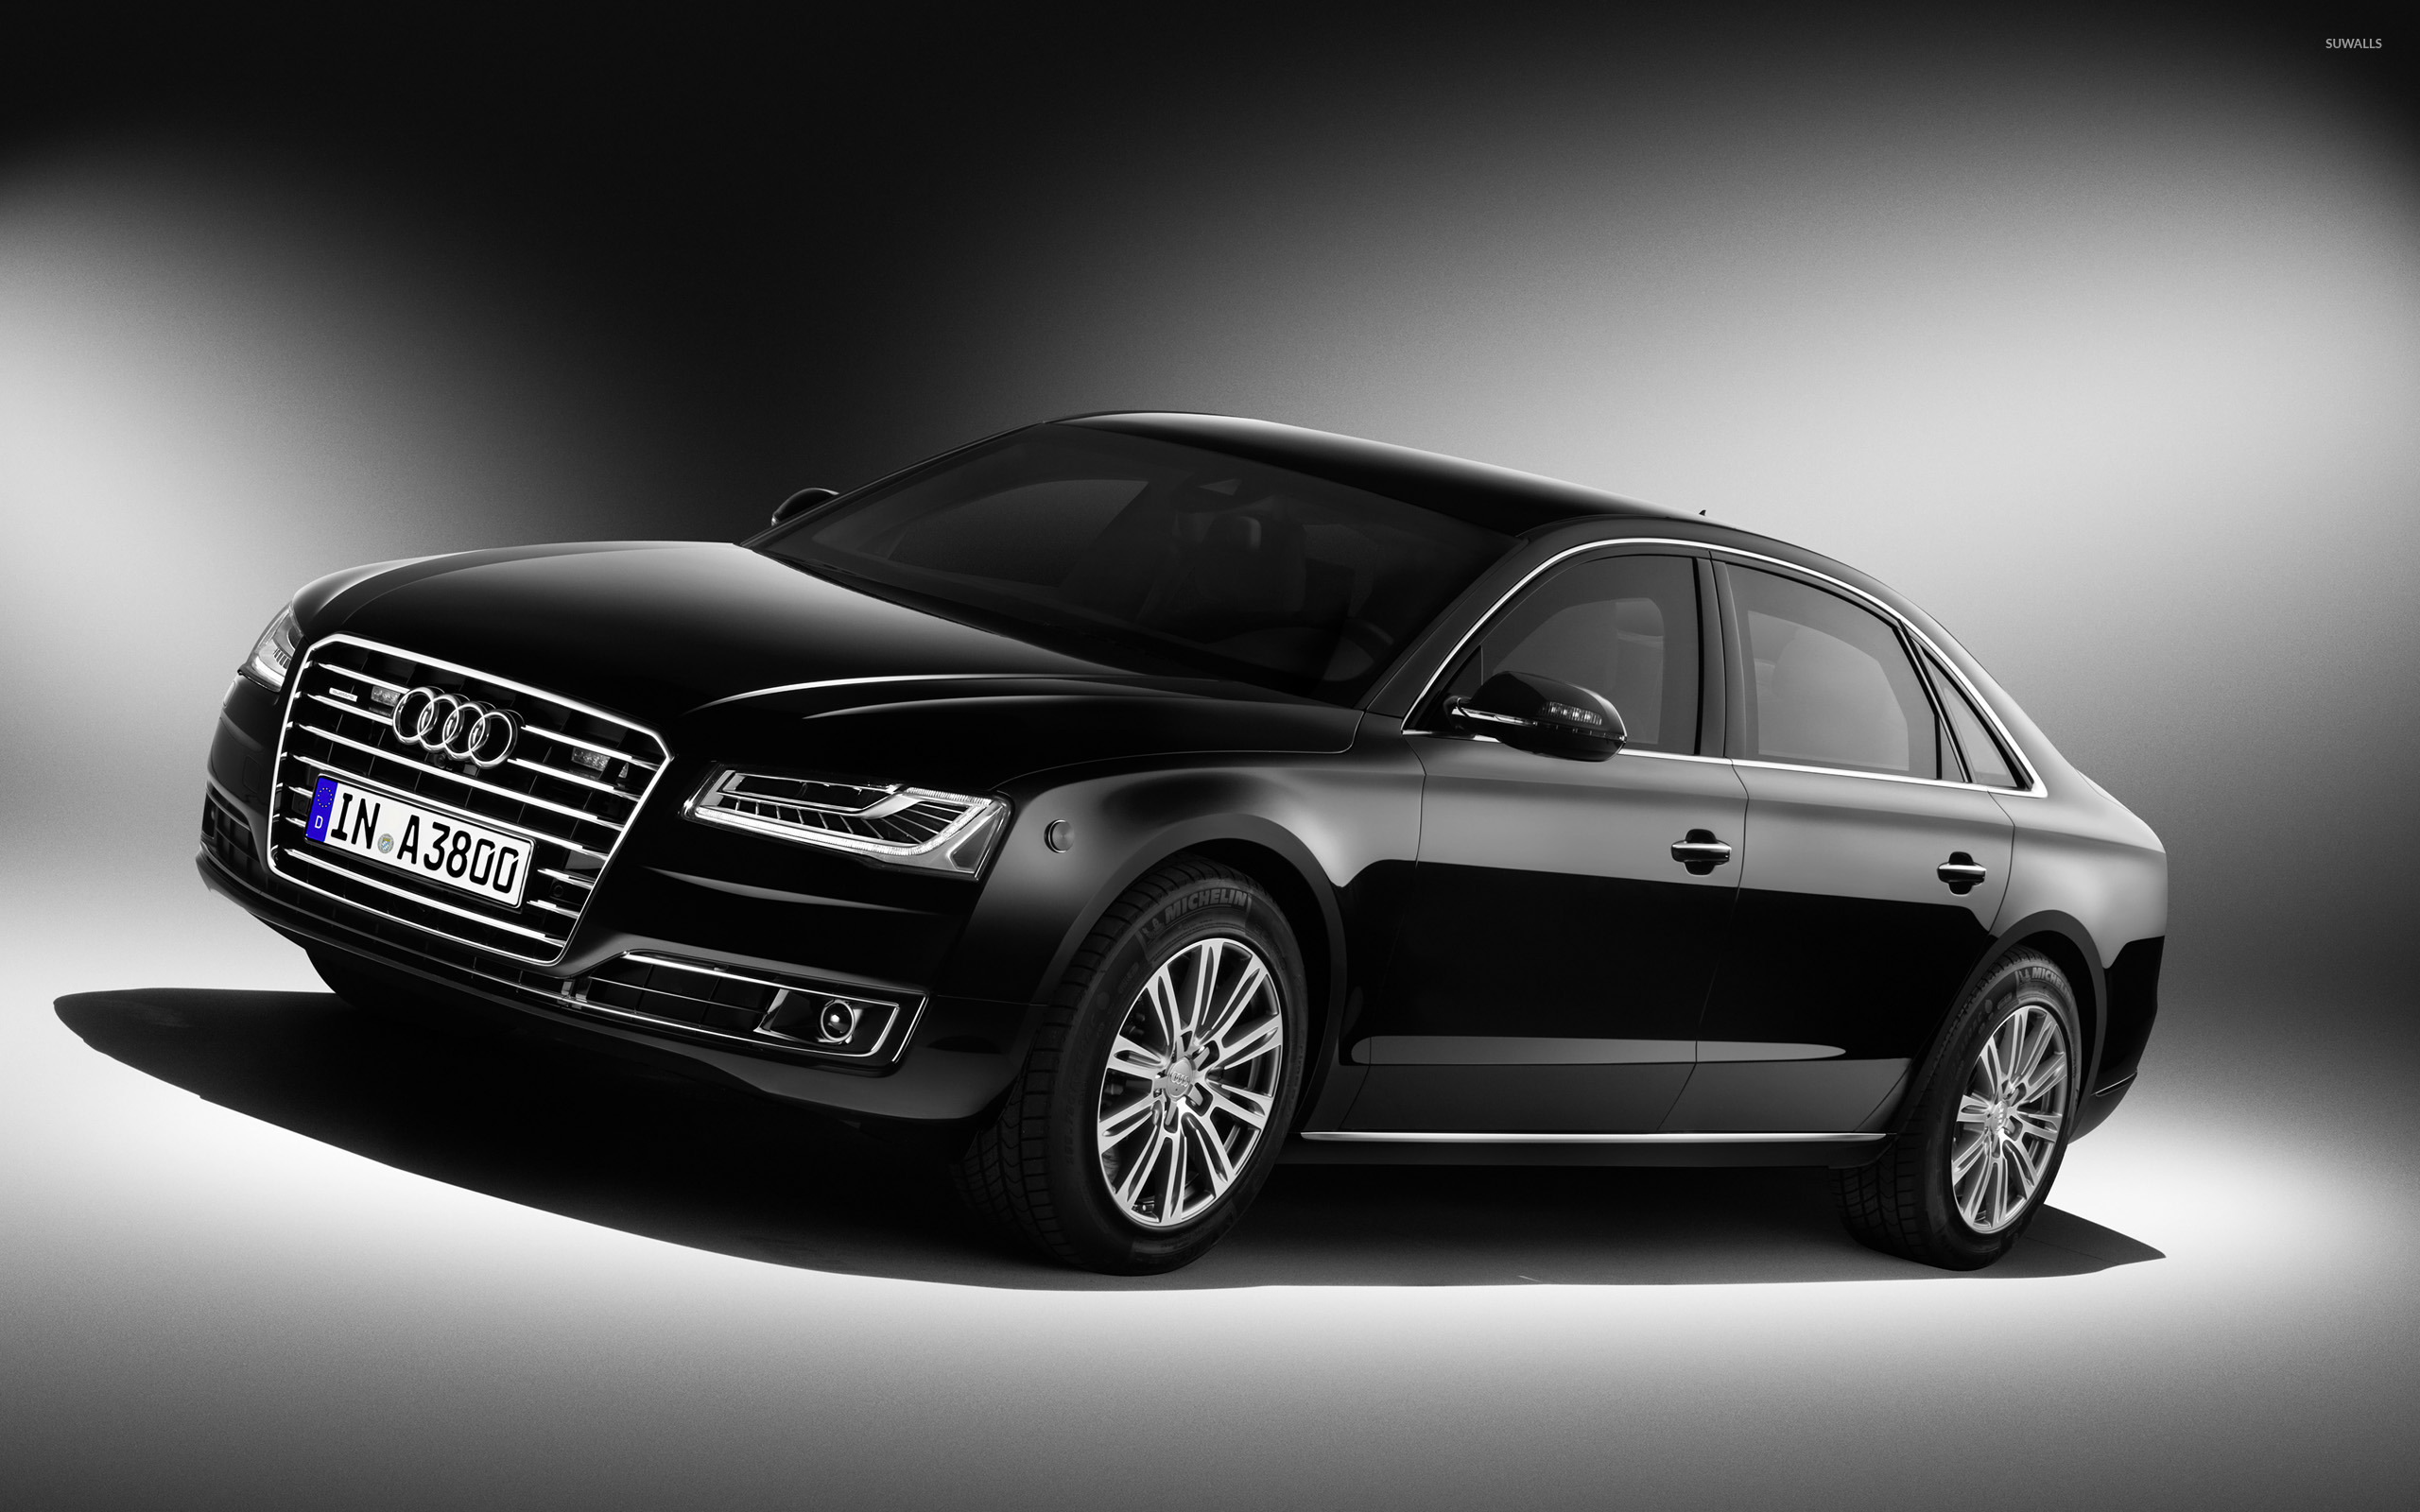 2014 audi a8 l w12 quattro 8 wallpaper car wallpapers 39716. Black Bedroom Furniture Sets. Home Design Ideas